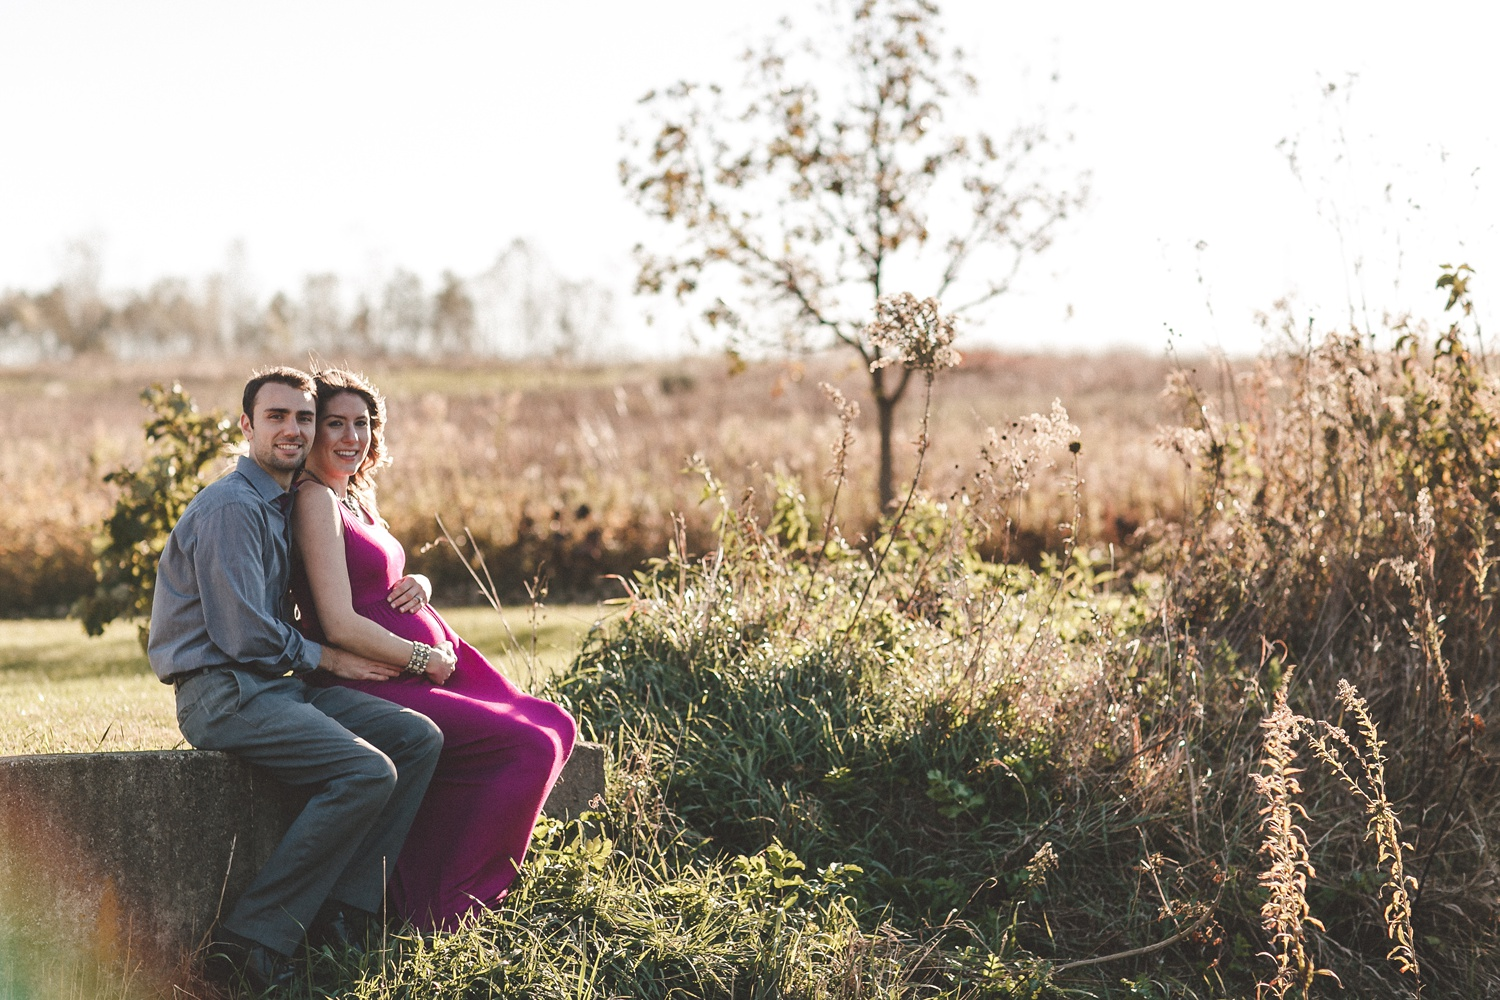 dekalb_IL_maternity_portrait_photographer_0020.jpg